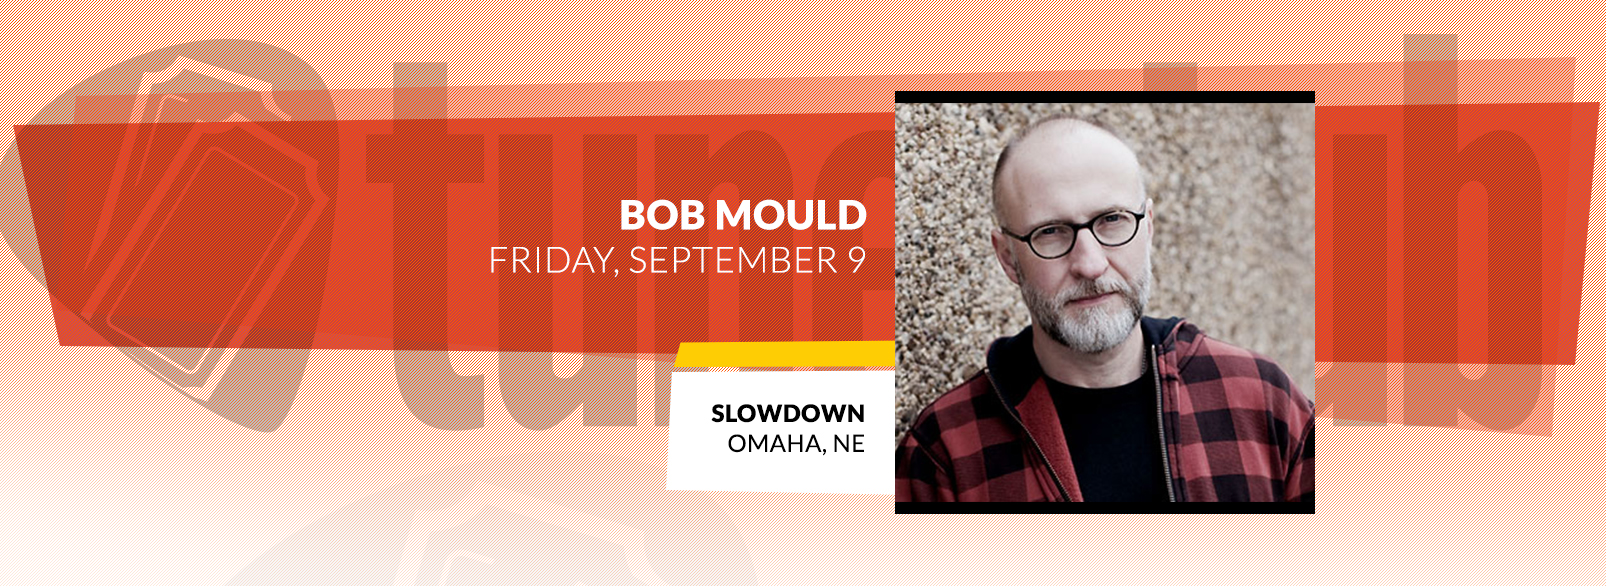 Bob Mould @ Slowdown